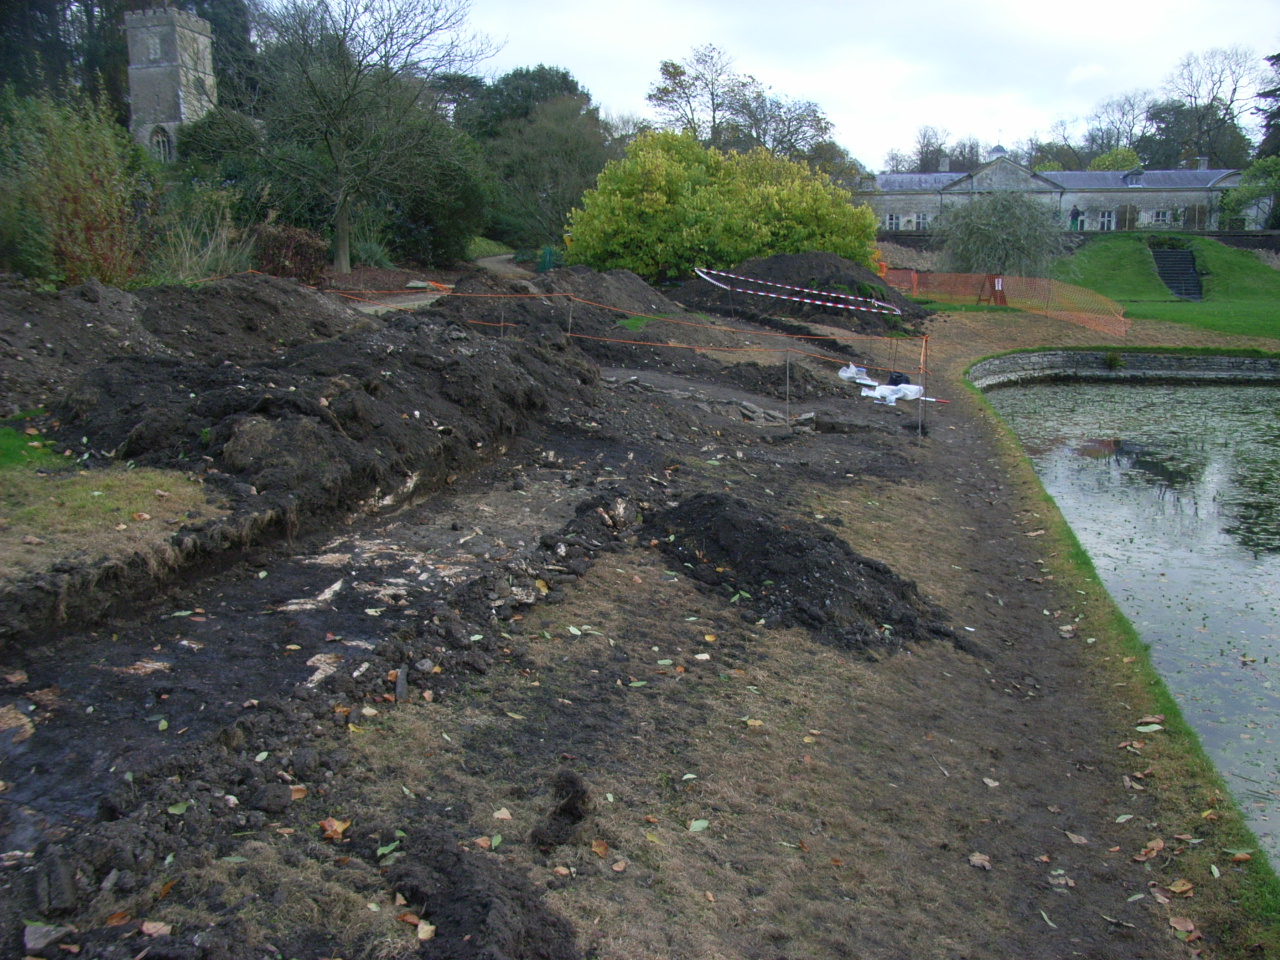 An excavation to repair the lake wall and put in new paths revealed pre-medieval ditches and stone structures.